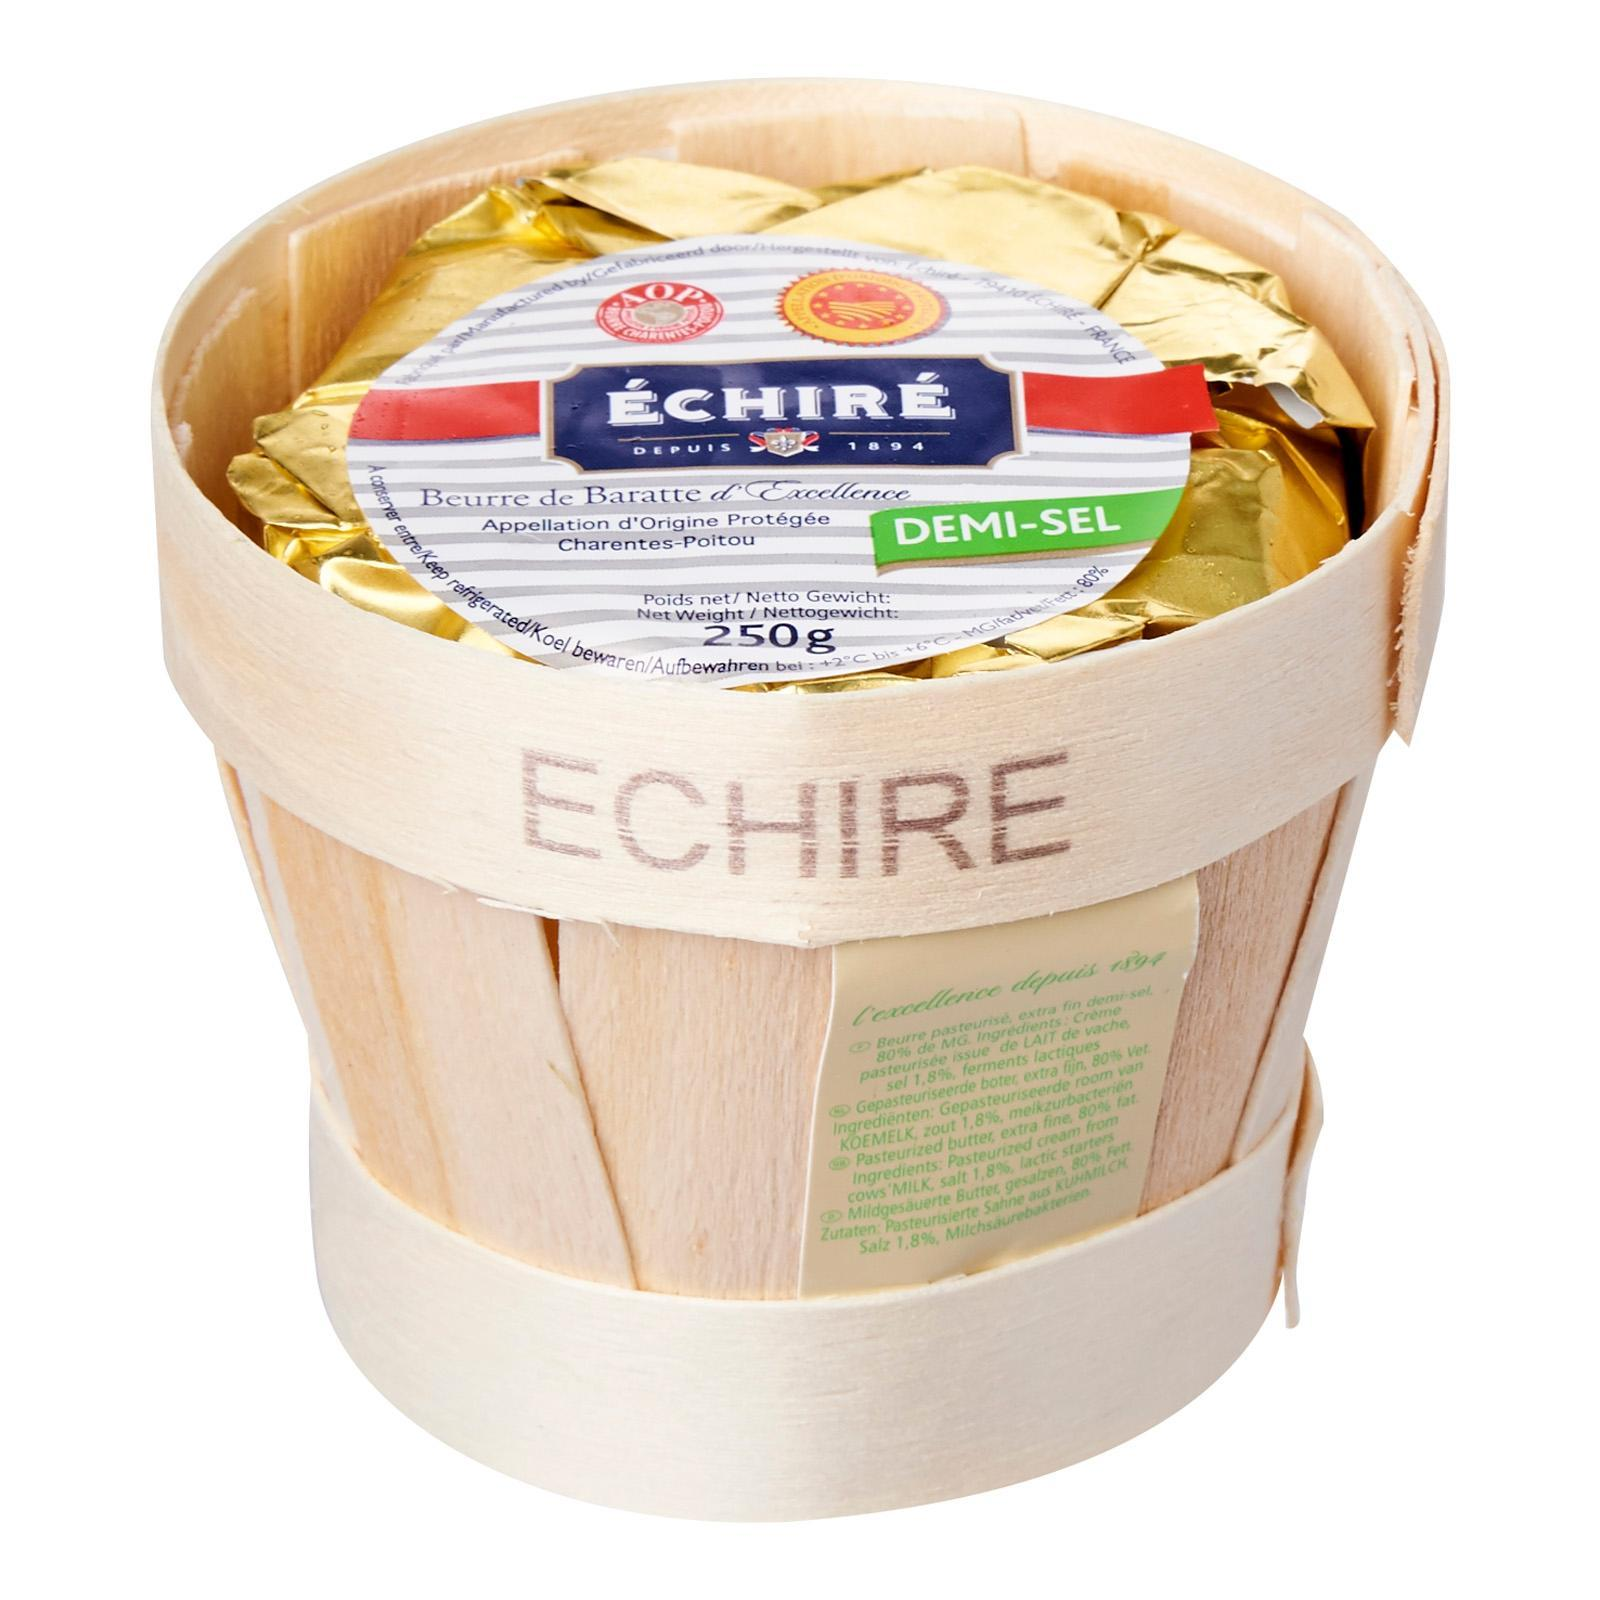 ECHIRE Butter Salted Basket